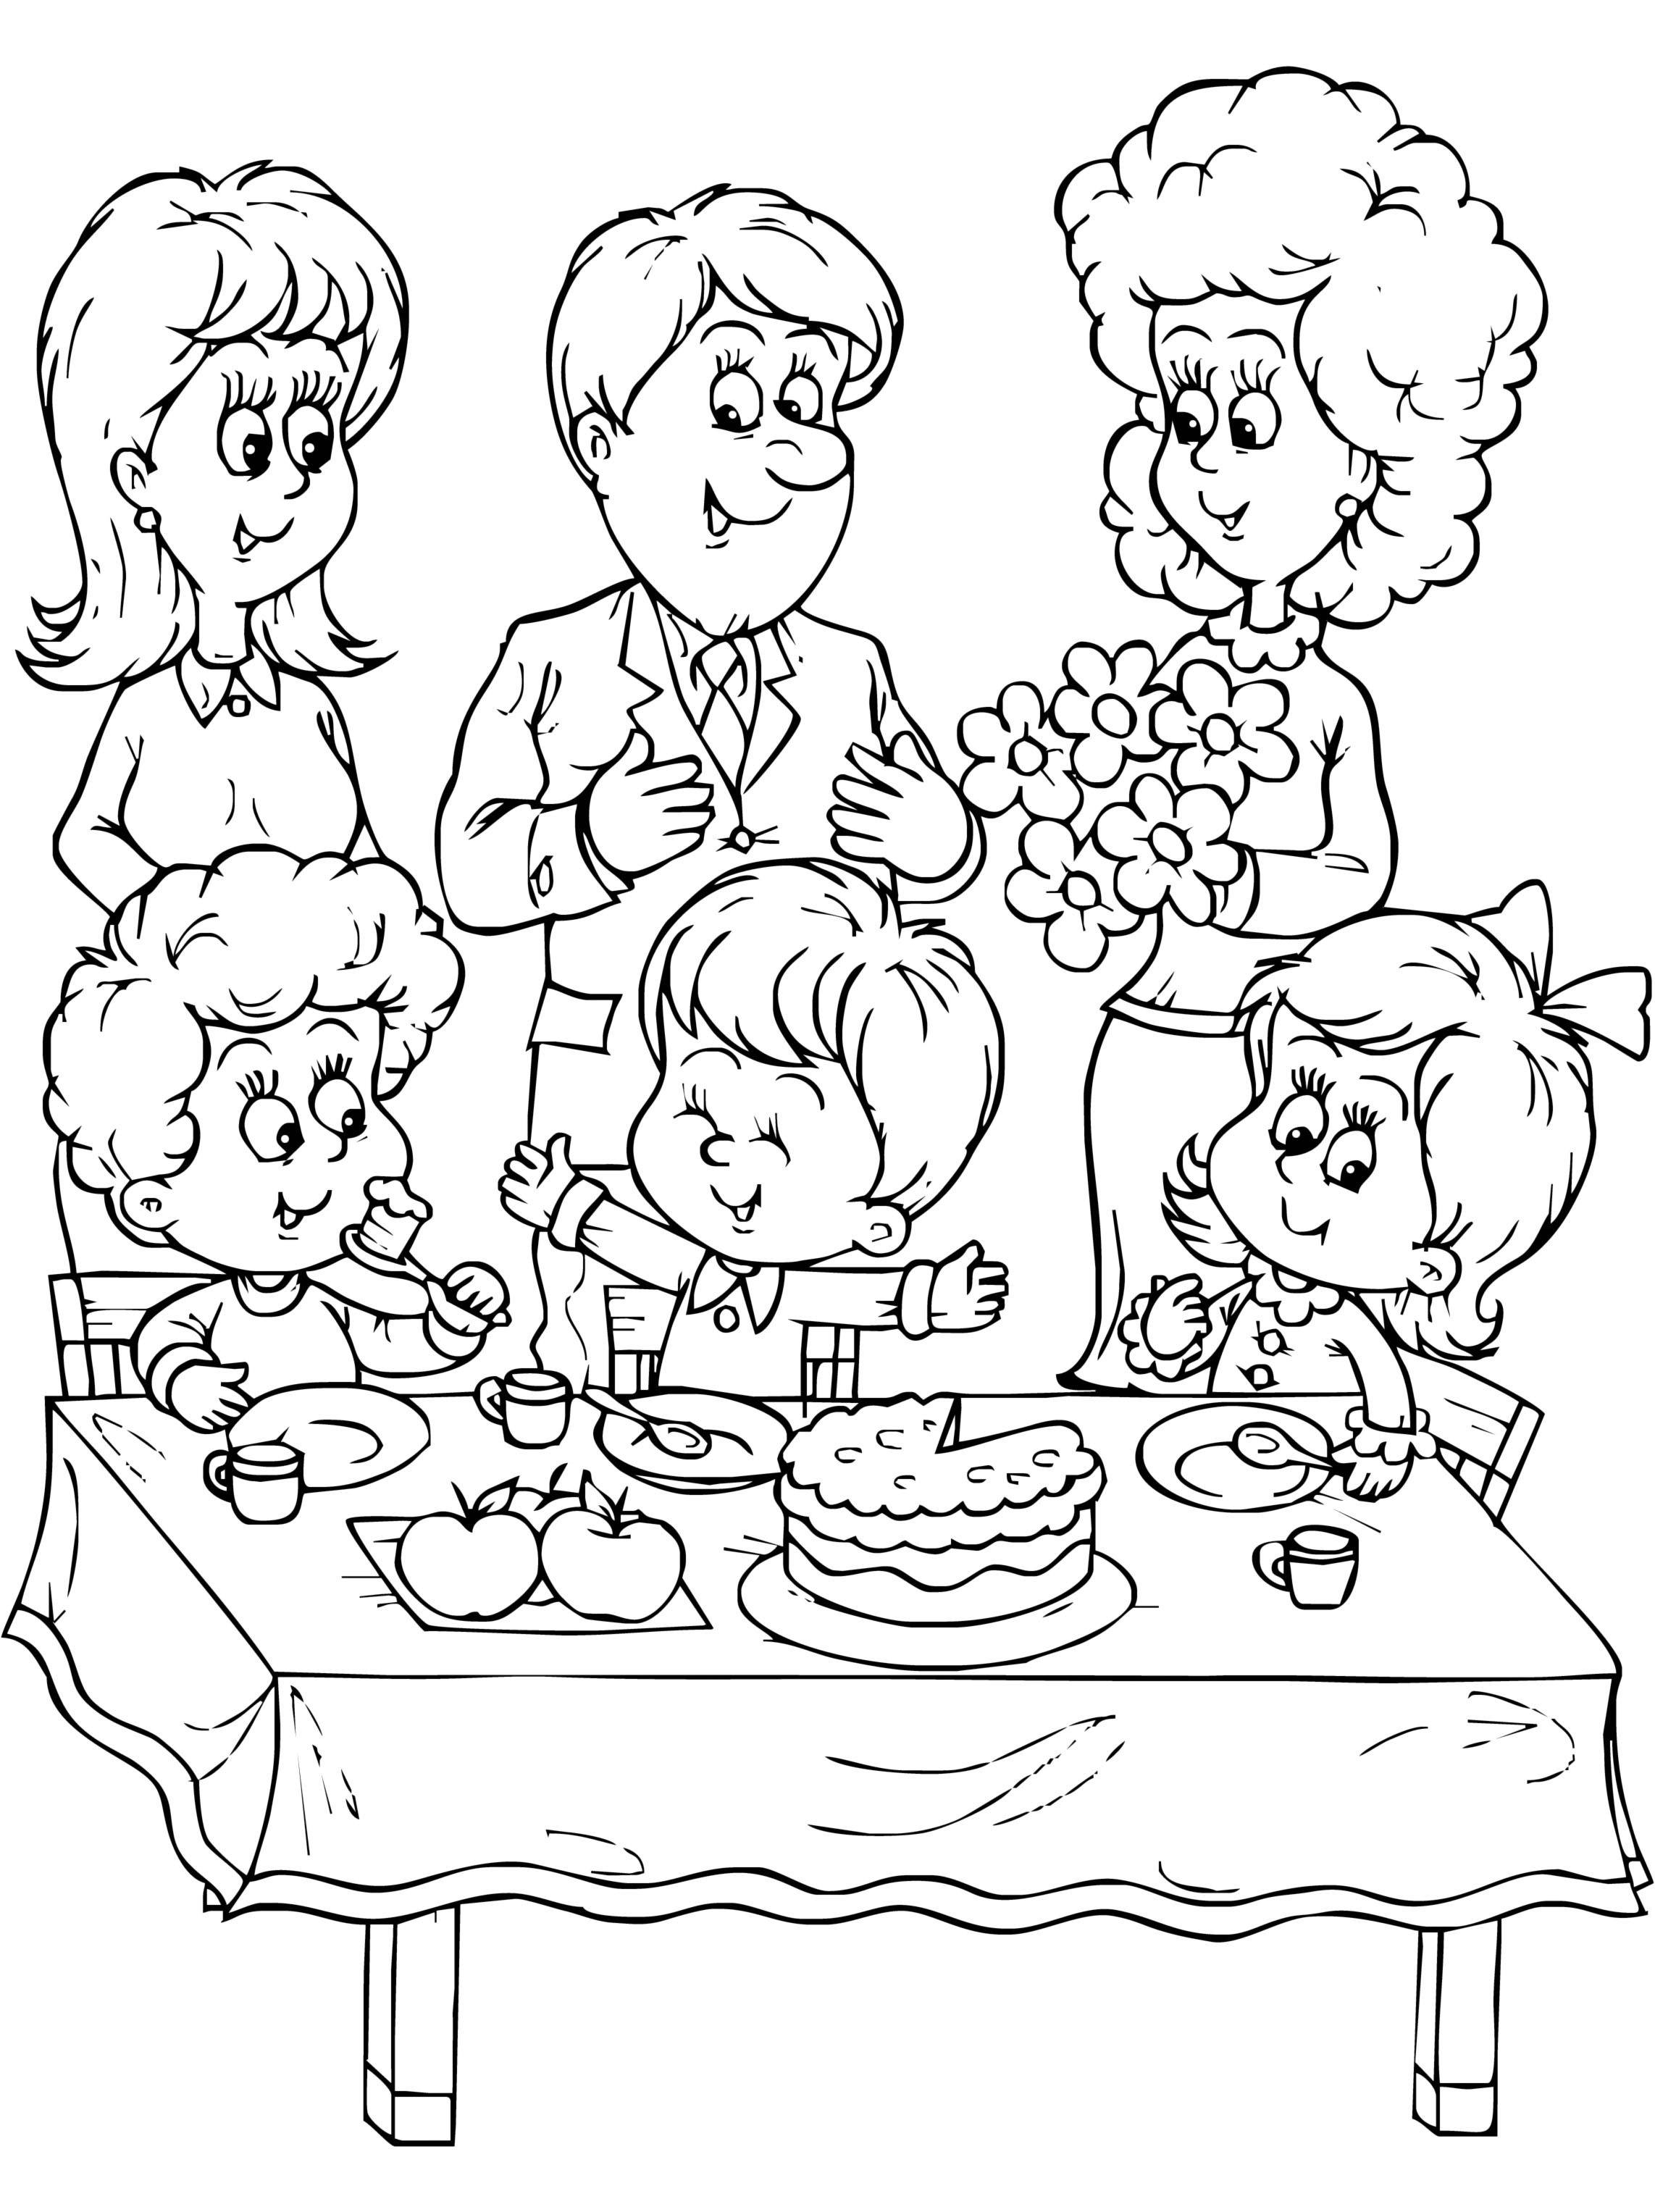 Family Drawing For Preschoolers At Getdrawings